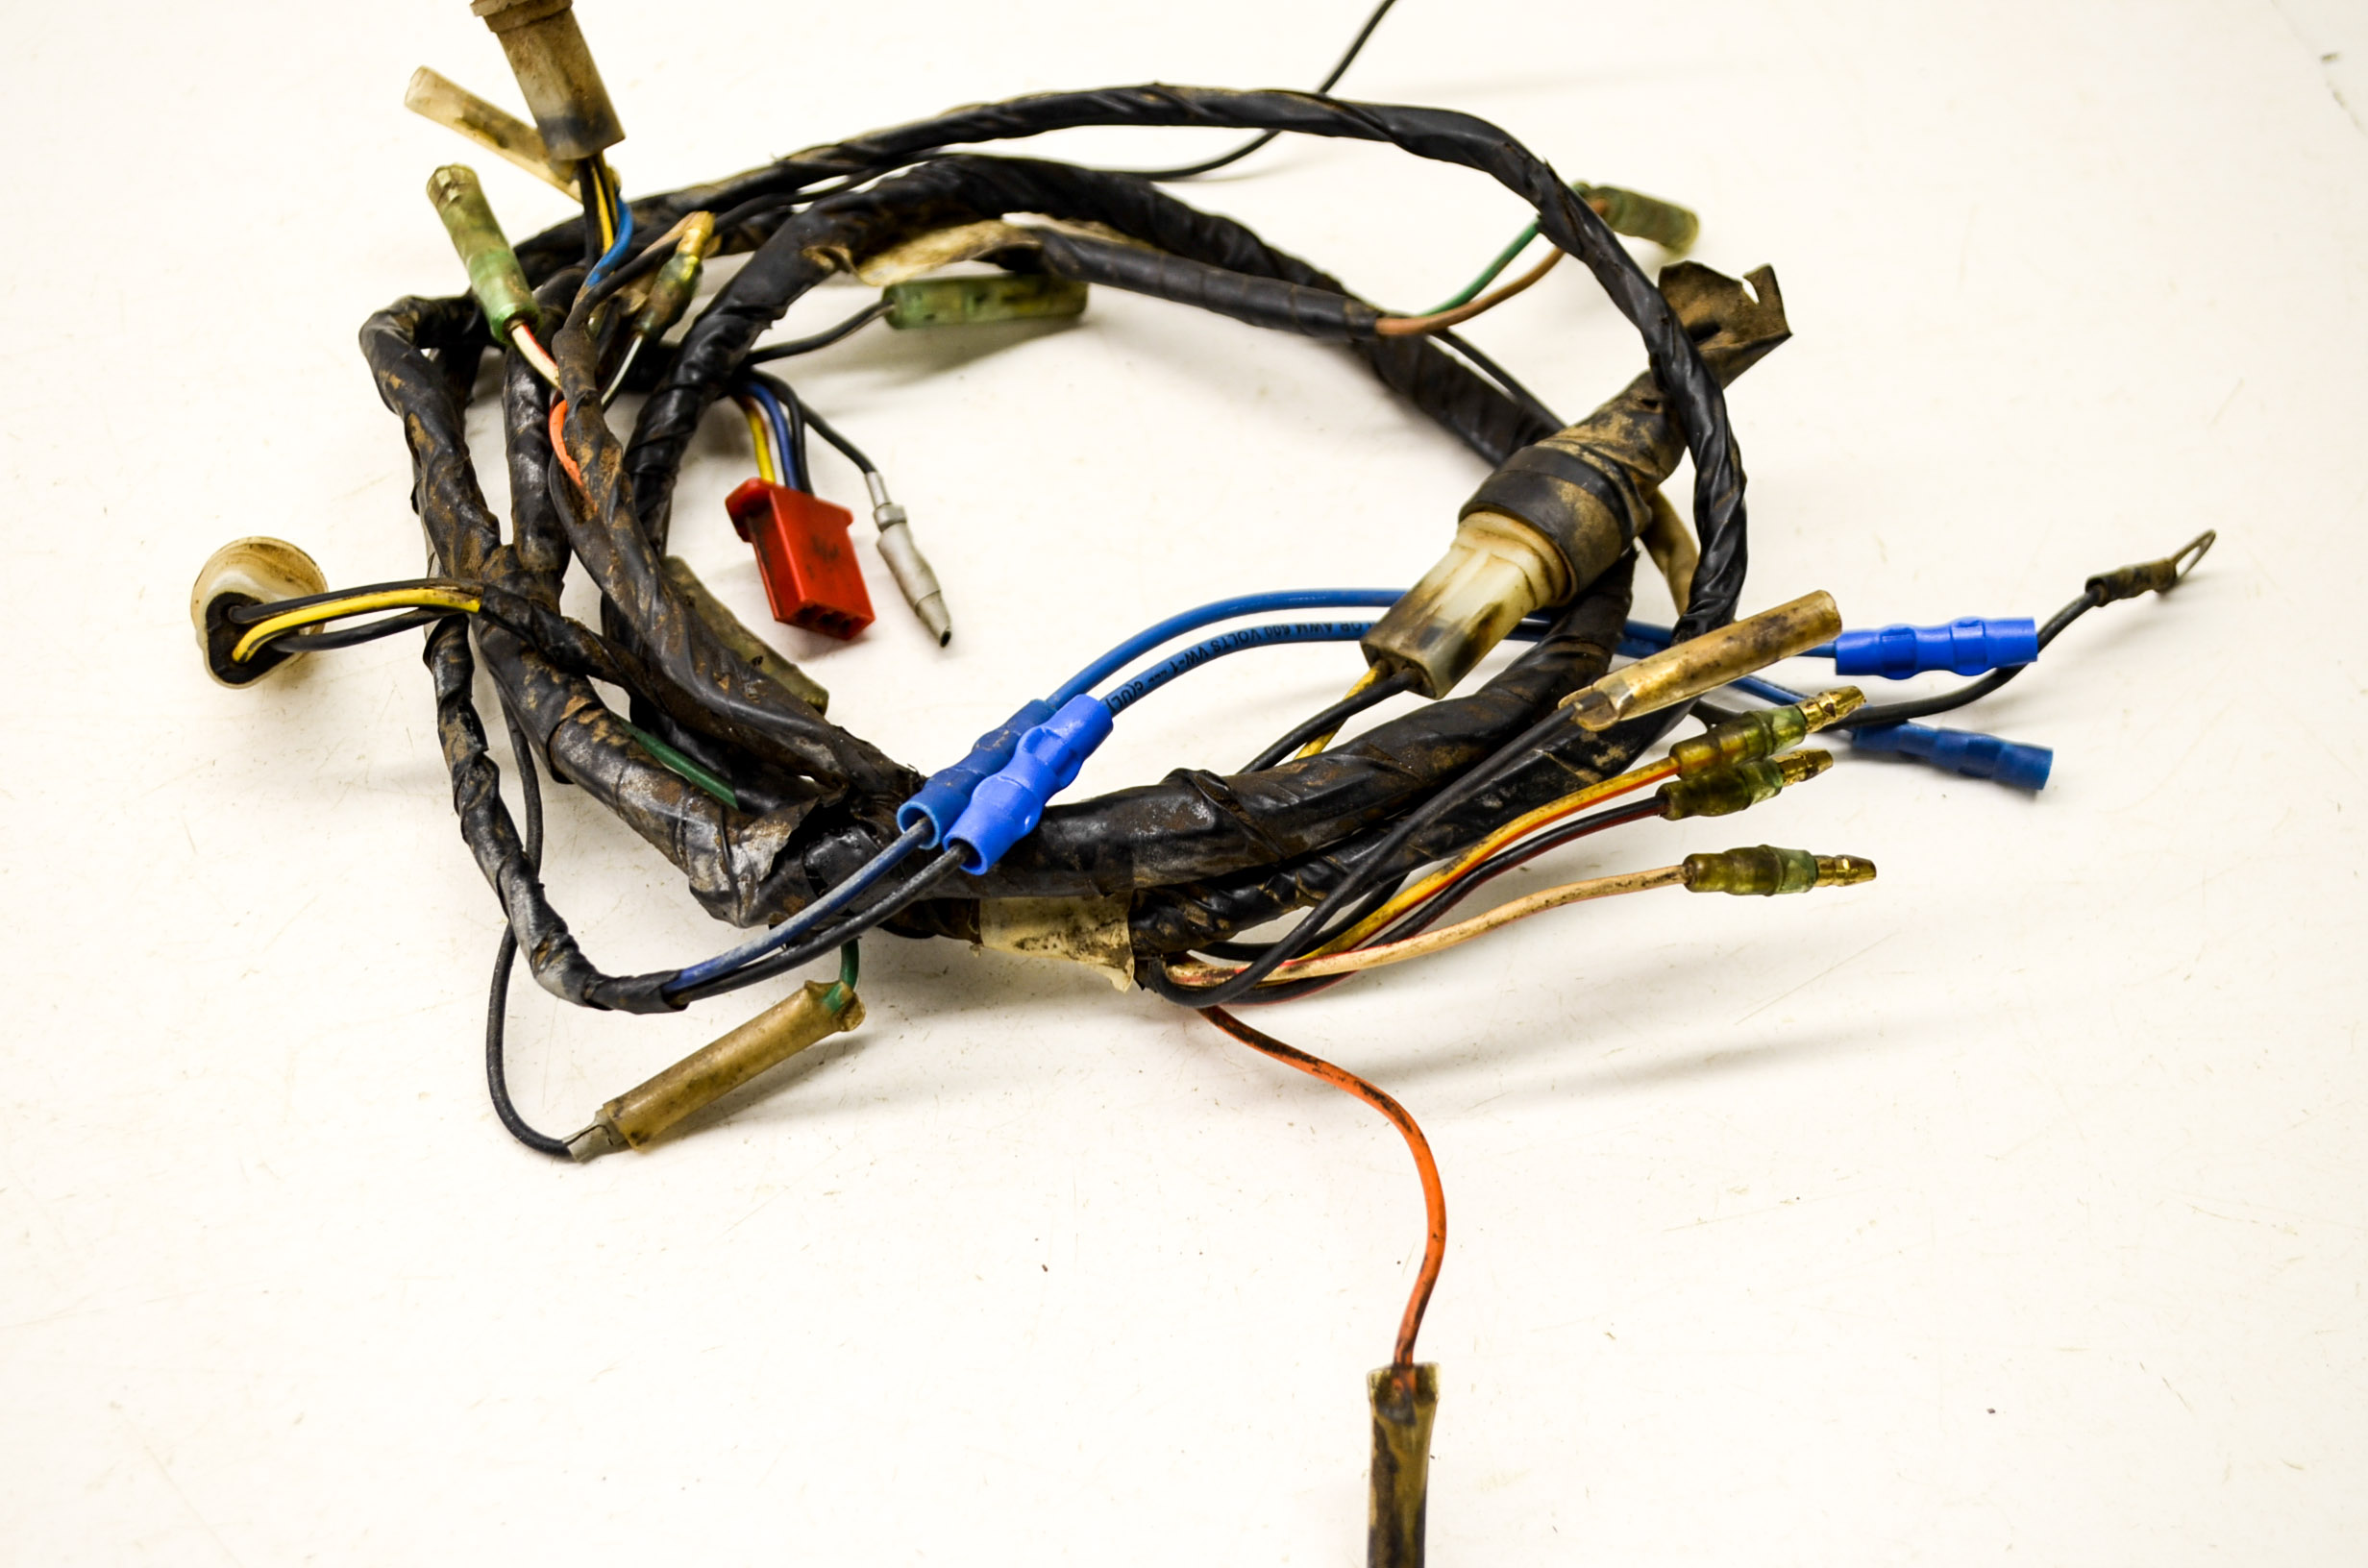 89 yamaha blaster 200 wire harness electrical wiring ... 1989 yamaha blaster wiring diagram yamaha blaster wiring harness #3